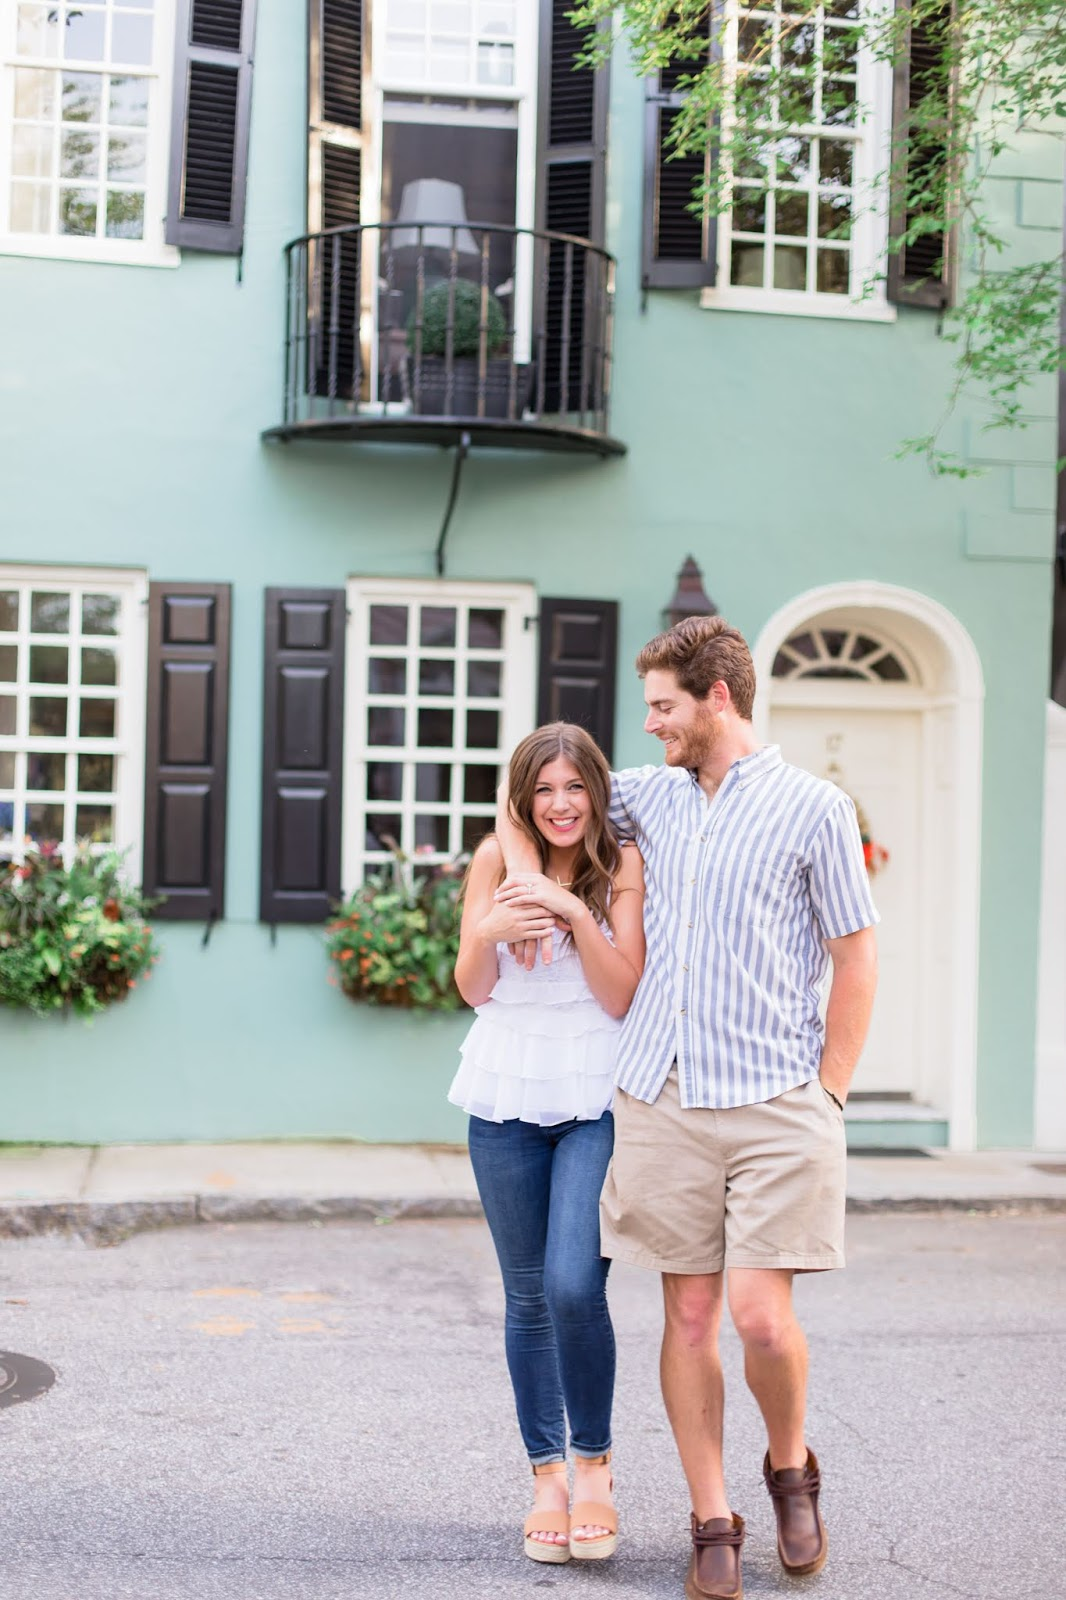 Our Downtown Charleston, SC Engagement Photoshoot - Chasing Cinderella